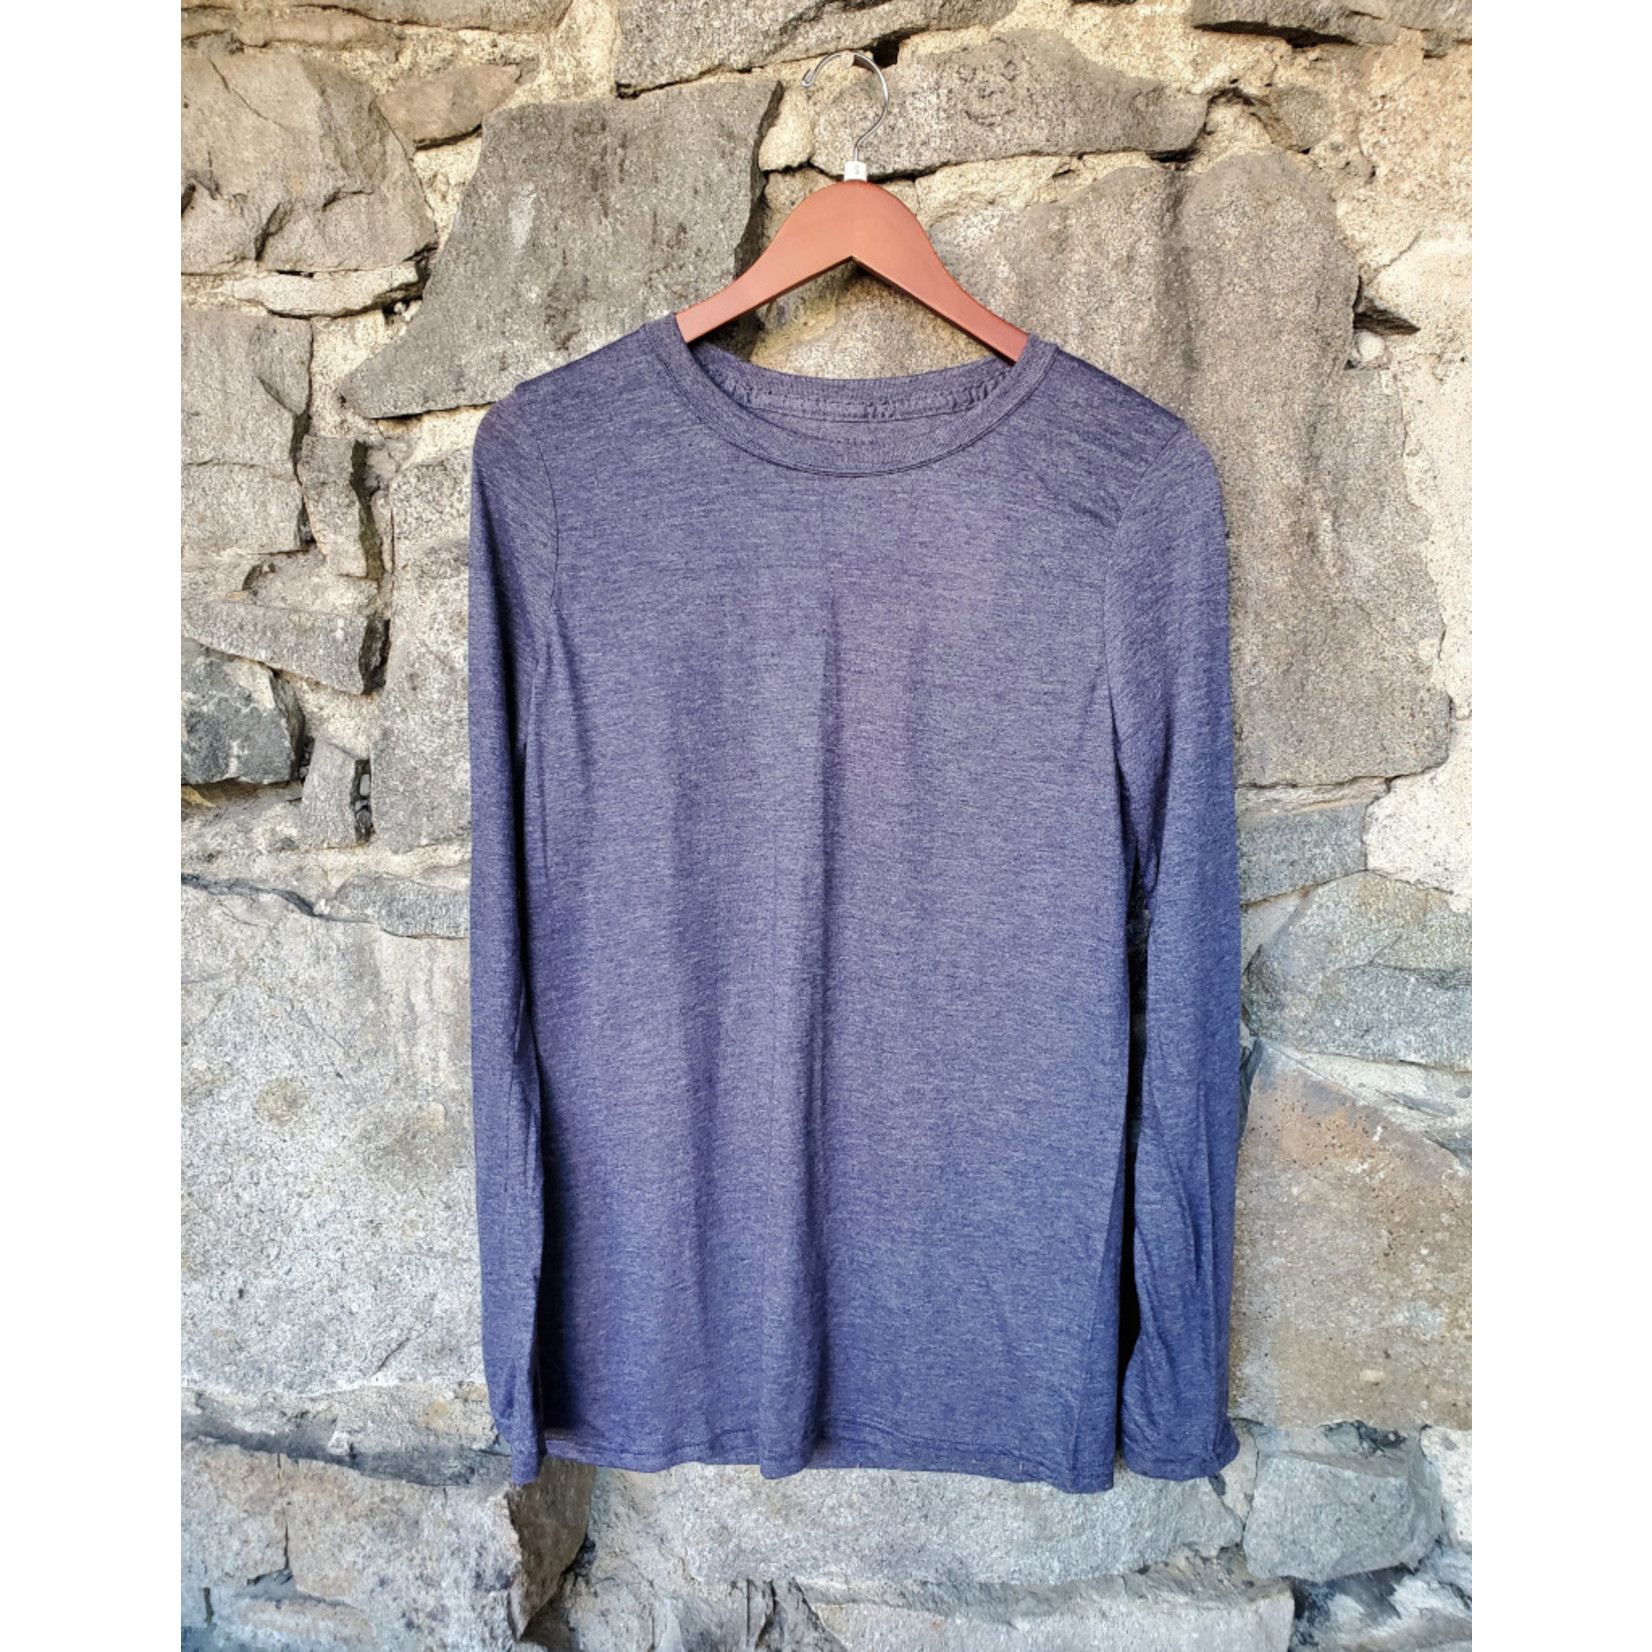 Stanfields Stanfield's 2017-M Long-Sleeve Crew Neck - 3 Colors